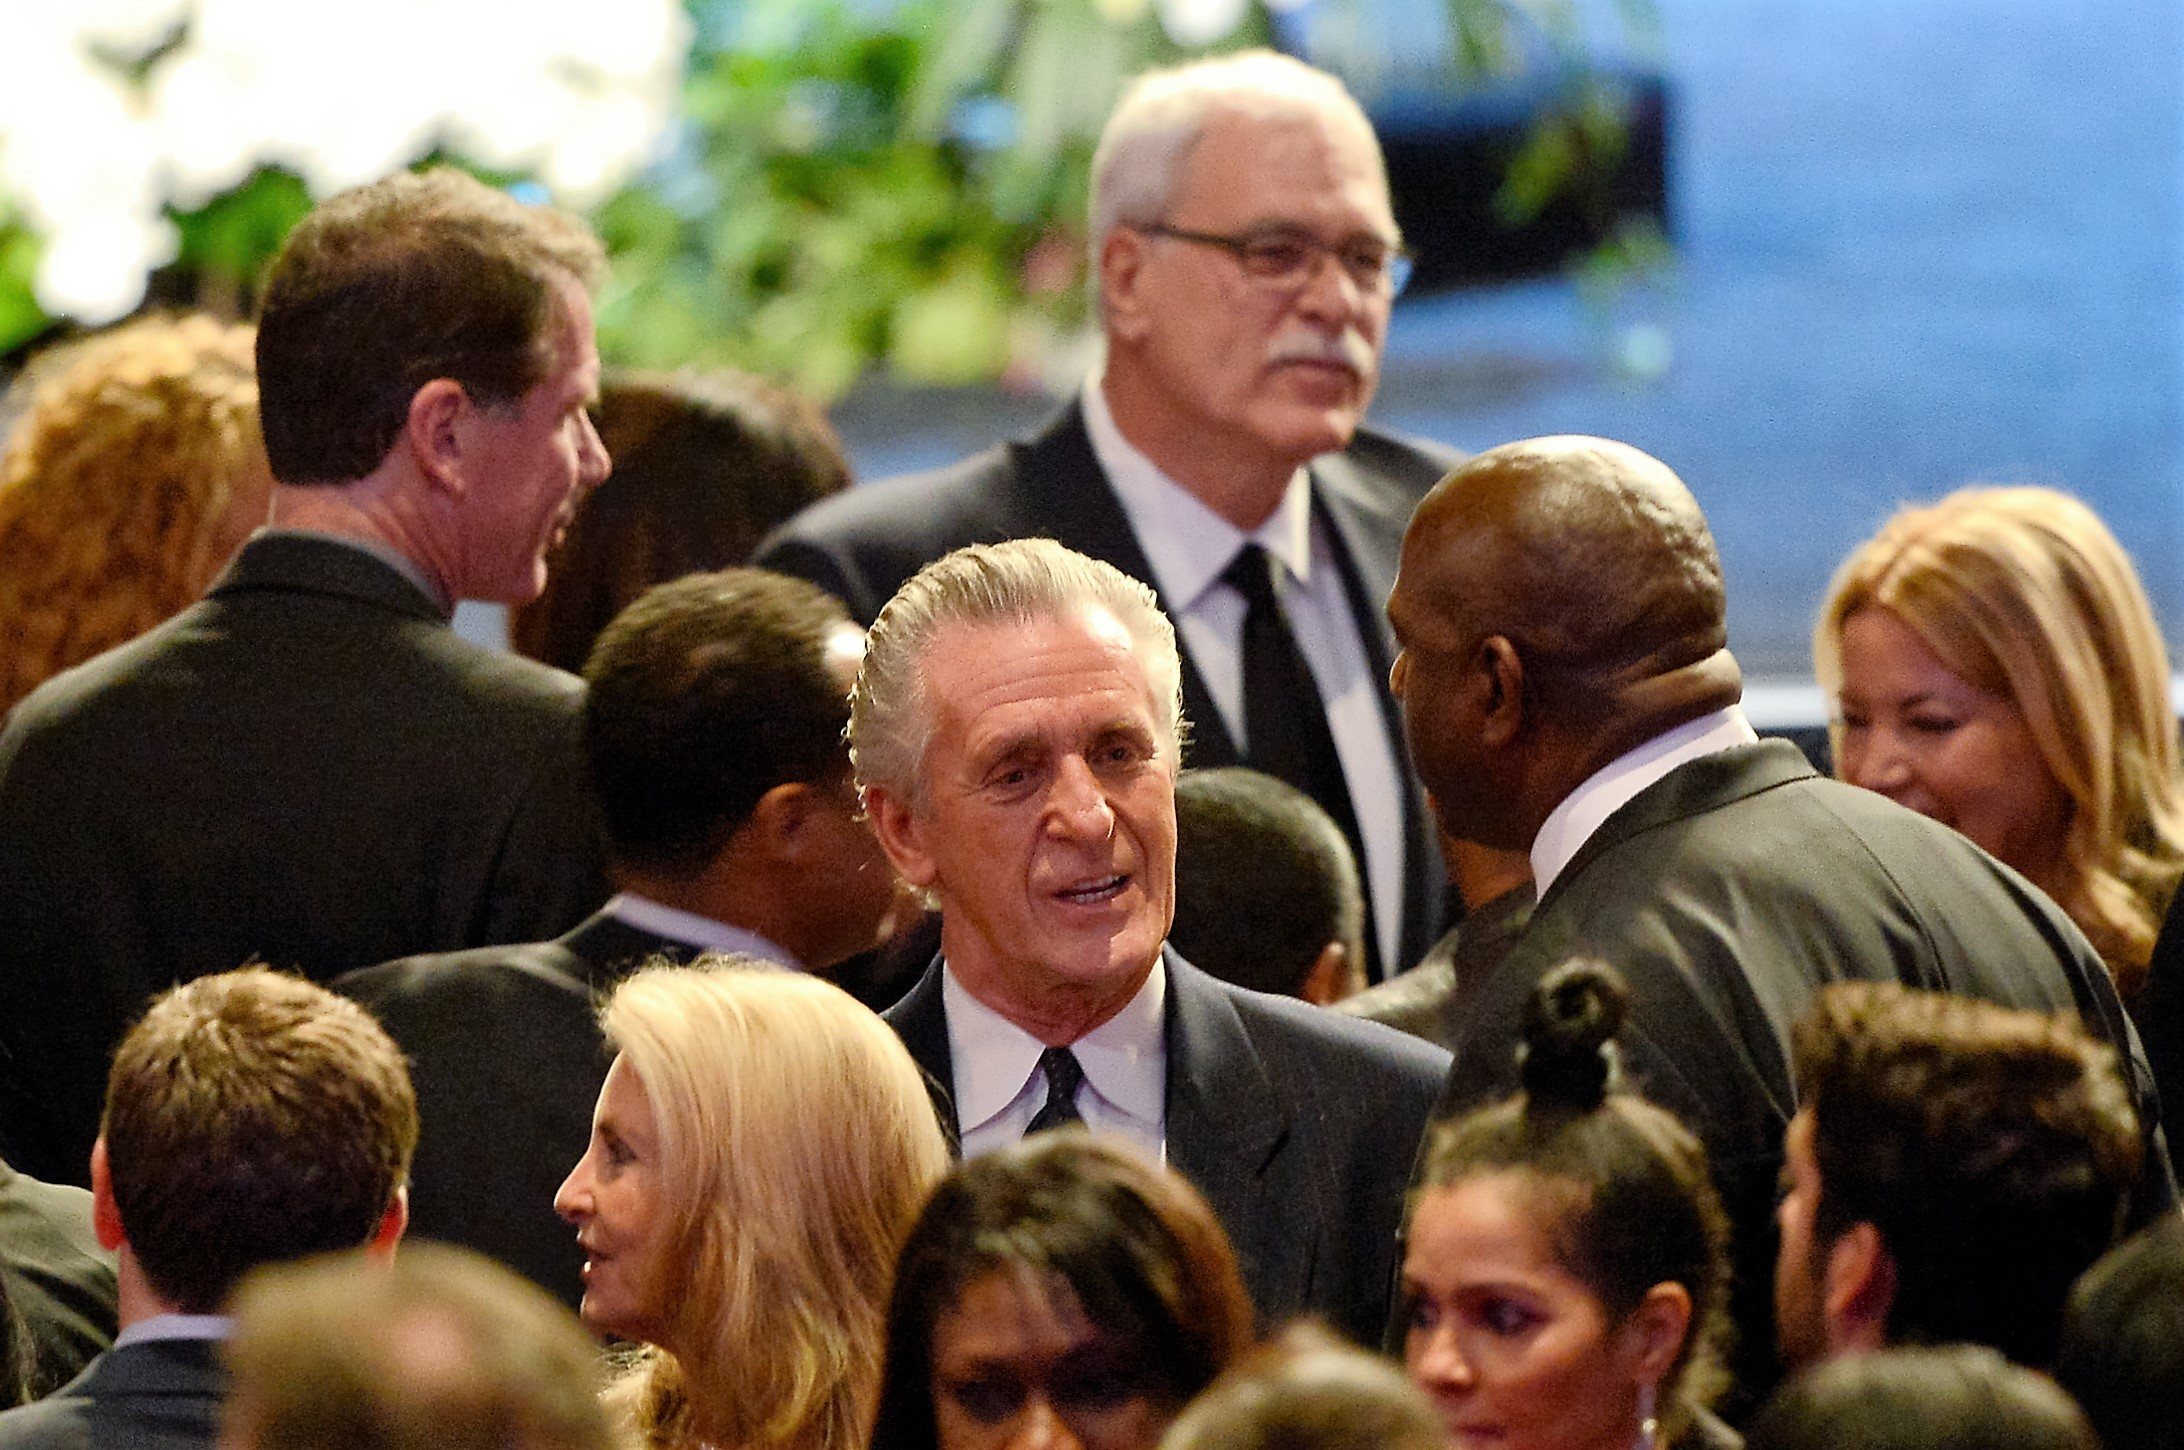 LOS ANGELES, CA - FEBRUARY 21: (C) Former Los Angeles Lakers head coach Pat Riley, (top) former head coach Phil Jackson and (R) Earvin 'Magic' Johnson are seen before the start of the memorial service for Los Angeles Lakers owner Dr. Jerry Buss at the Nokia Theatre L.A. Live on February 21, 2013 in Los Angeles, California. Dr. Buss died at the age of 80 on Monday following an 18-month battle with cancer. Buss won 10 NBA championships as Lakers owner since purchasing the team in 1979. (Photo by Kevork Djansezian/Getty Images)